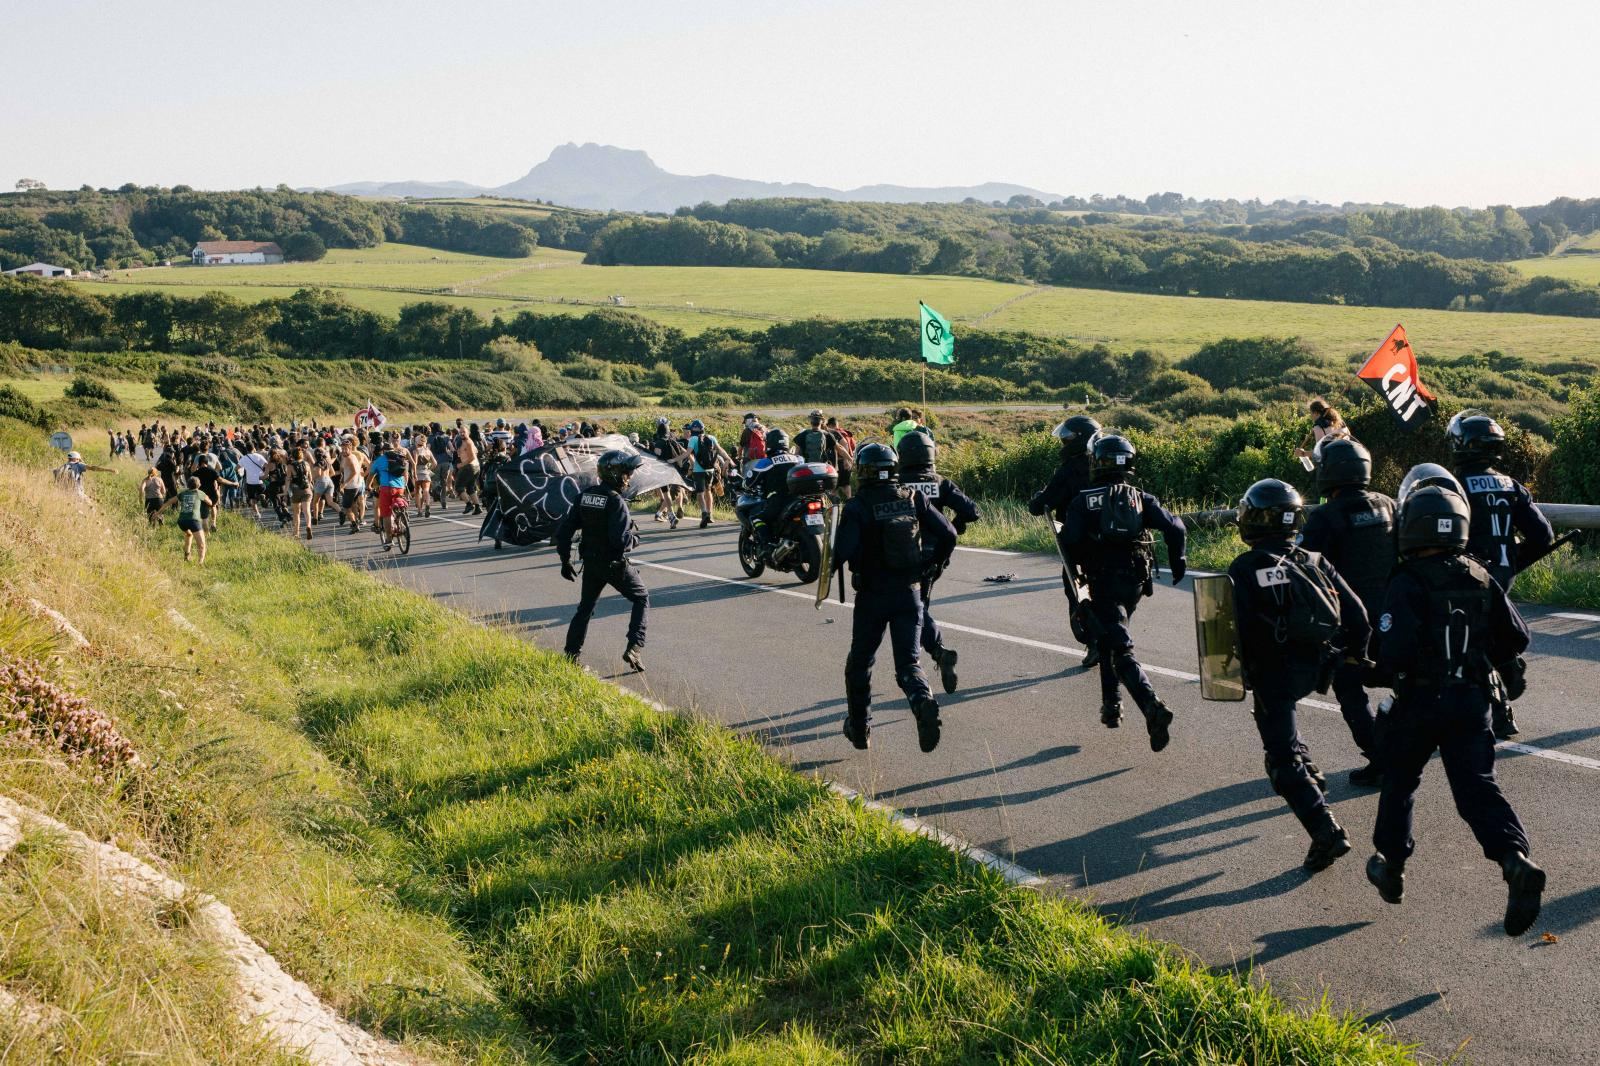 2019-08-23 - Spontaneous demonstration from the protest camp heading towards highway near Urrugne.